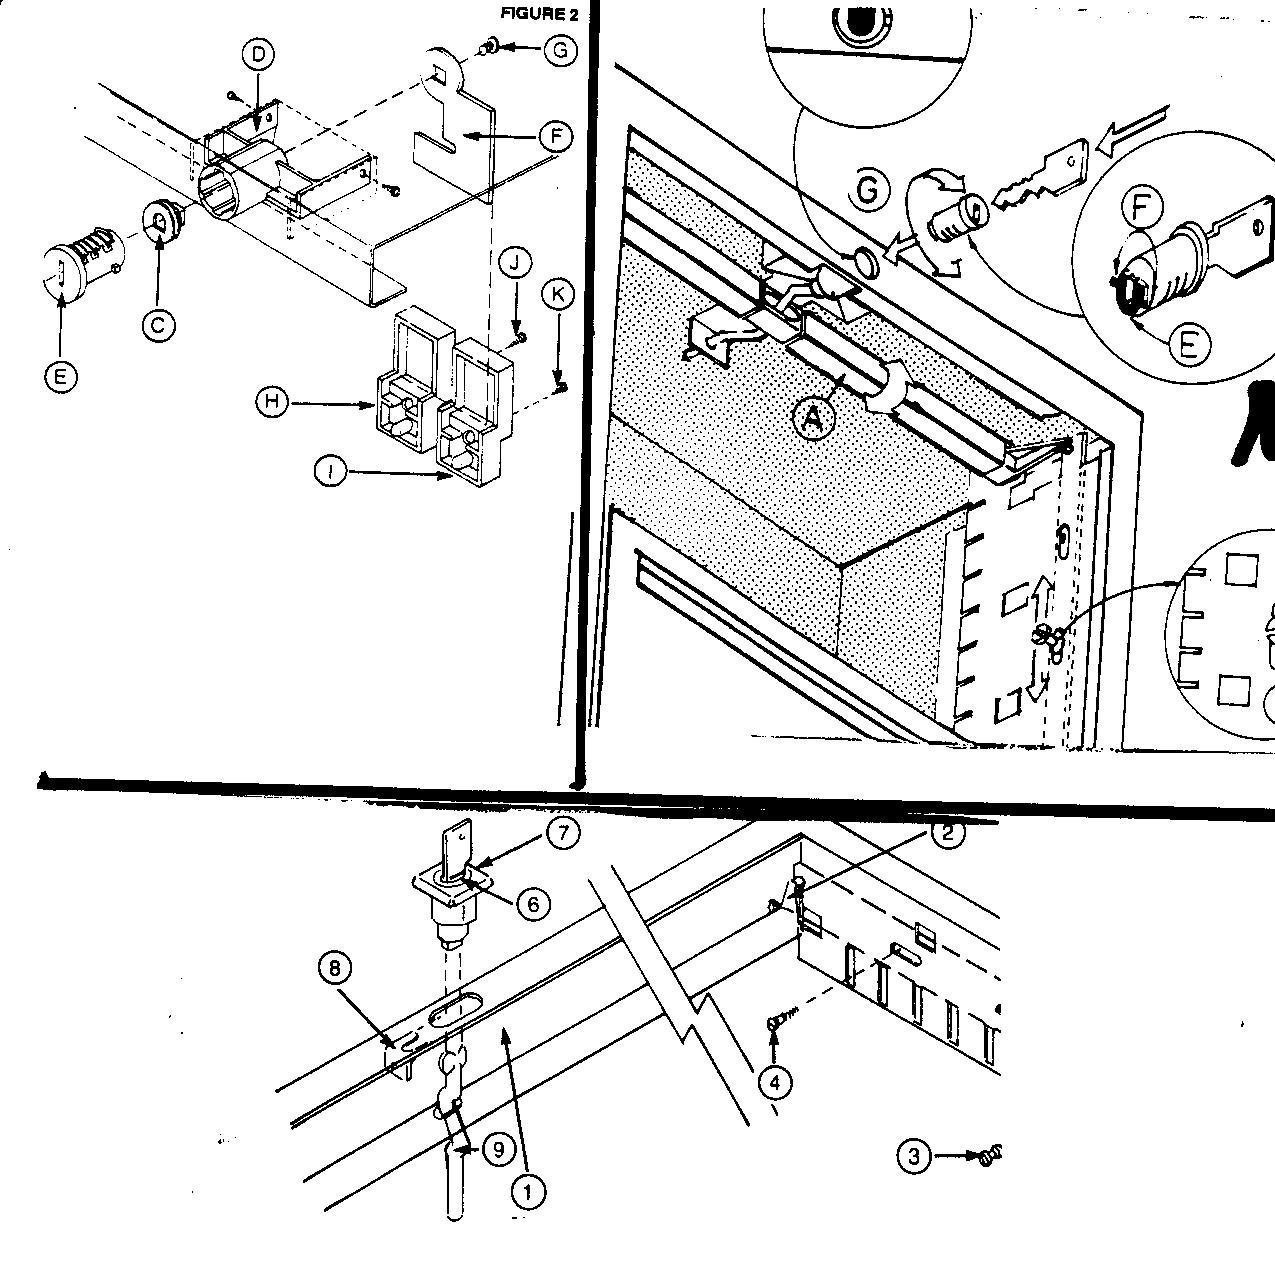 Filing Cabinet Drawing At Getdrawings Com Free For